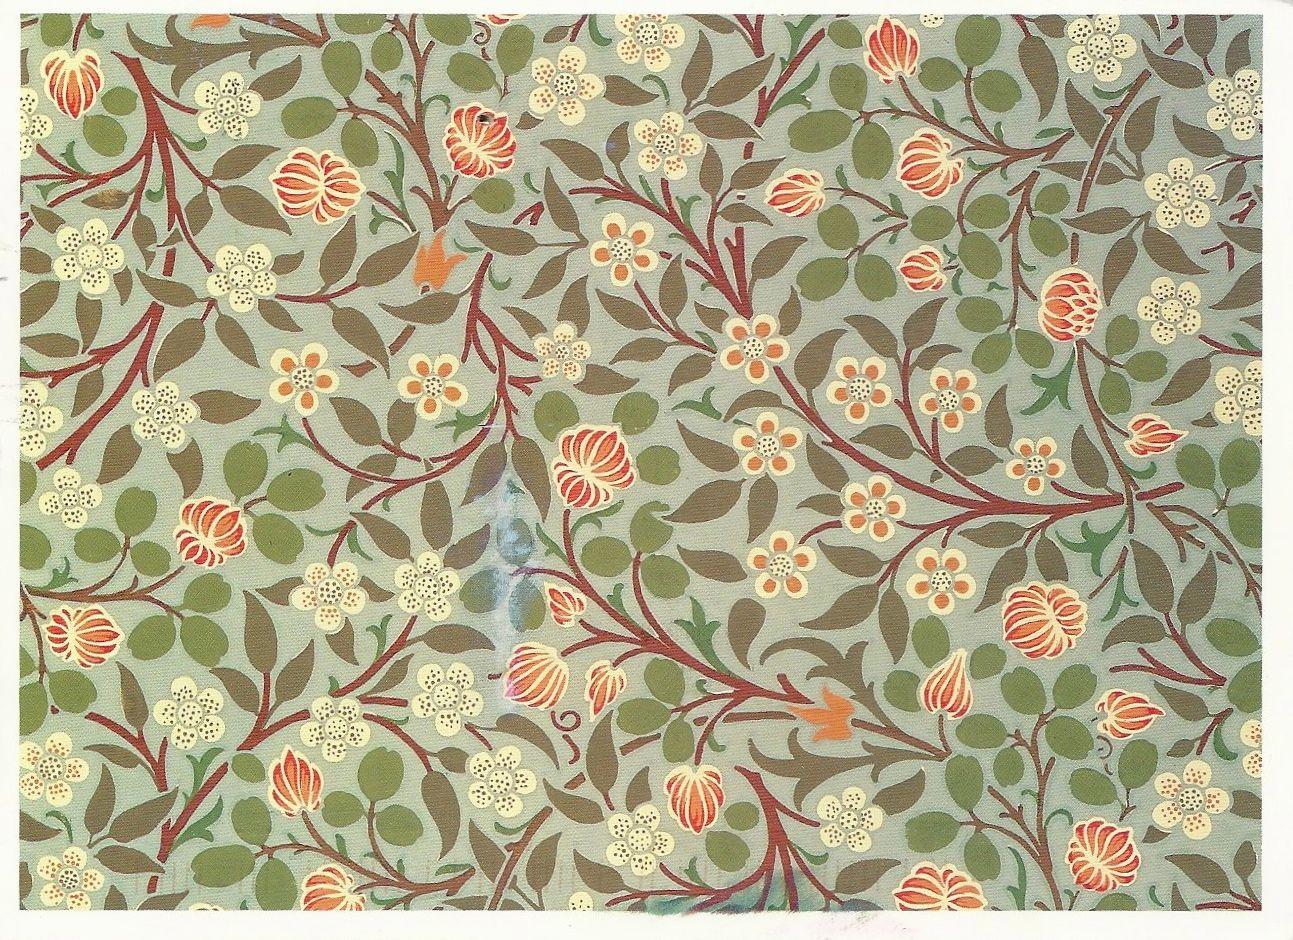 Arts And Crafts Movement Floral Pattern